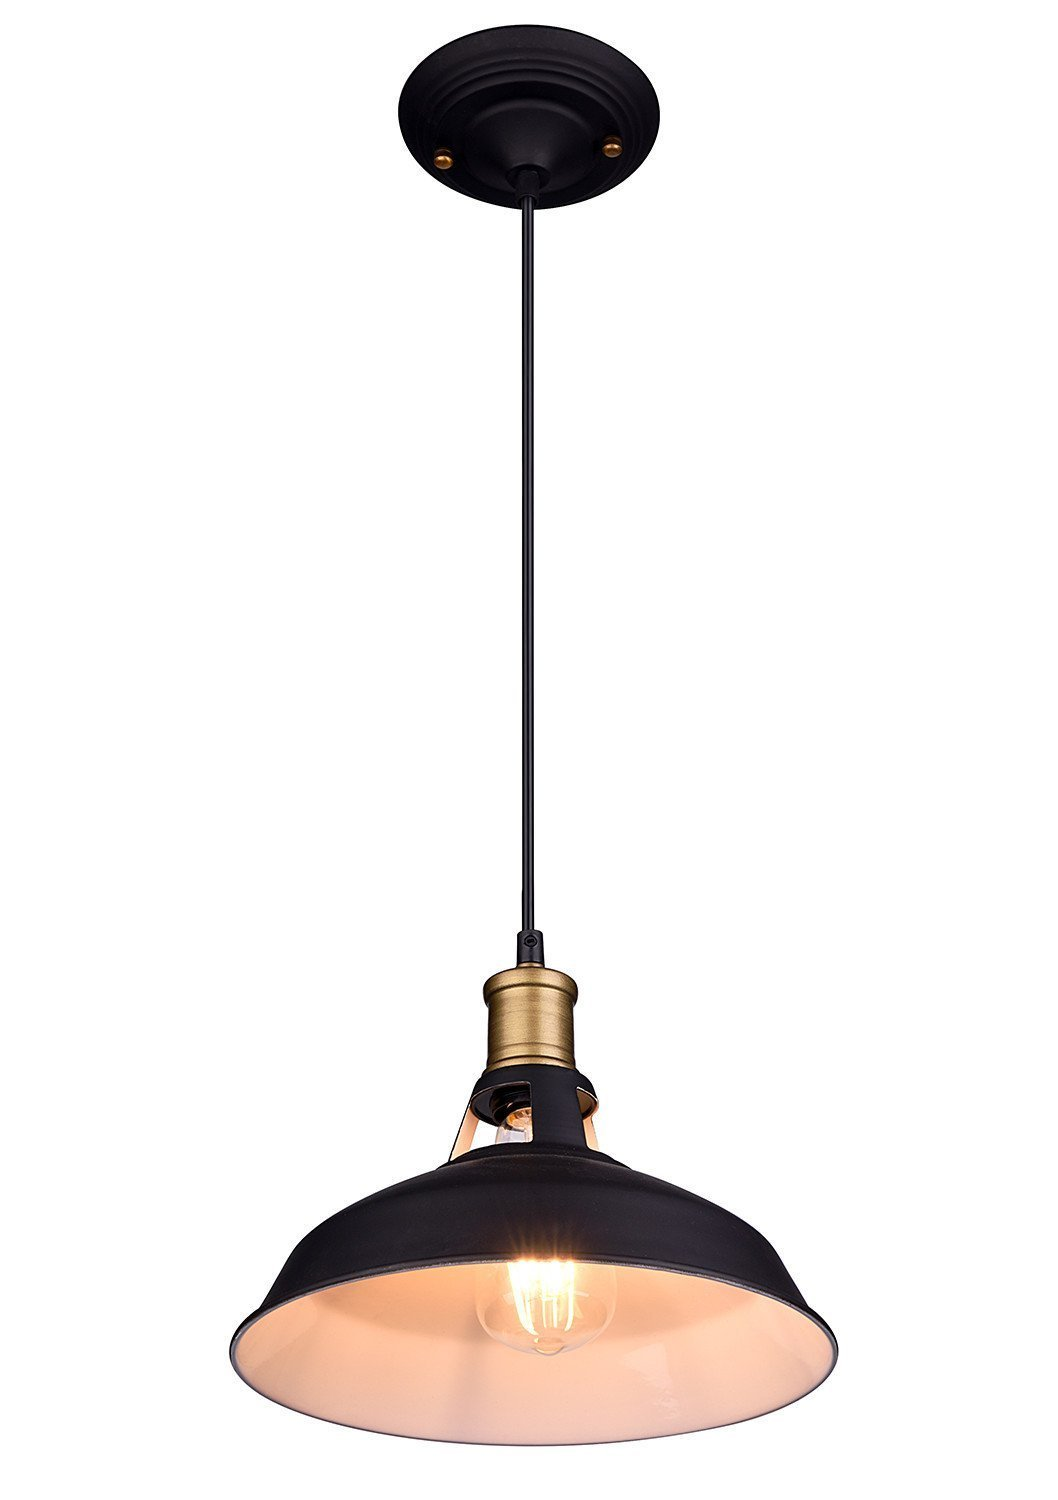 Oak Leaf Industrial Black Metal Barn Pendant Light Shade L& Sconce Pendant Lighting Fixture 1-Light for Dining RoomKitchen - Walmart.com  sc 1 st  Walmart & Oak Leaf Industrial Black Metal Barn Pendant Light Shade Lamp Sconce ...